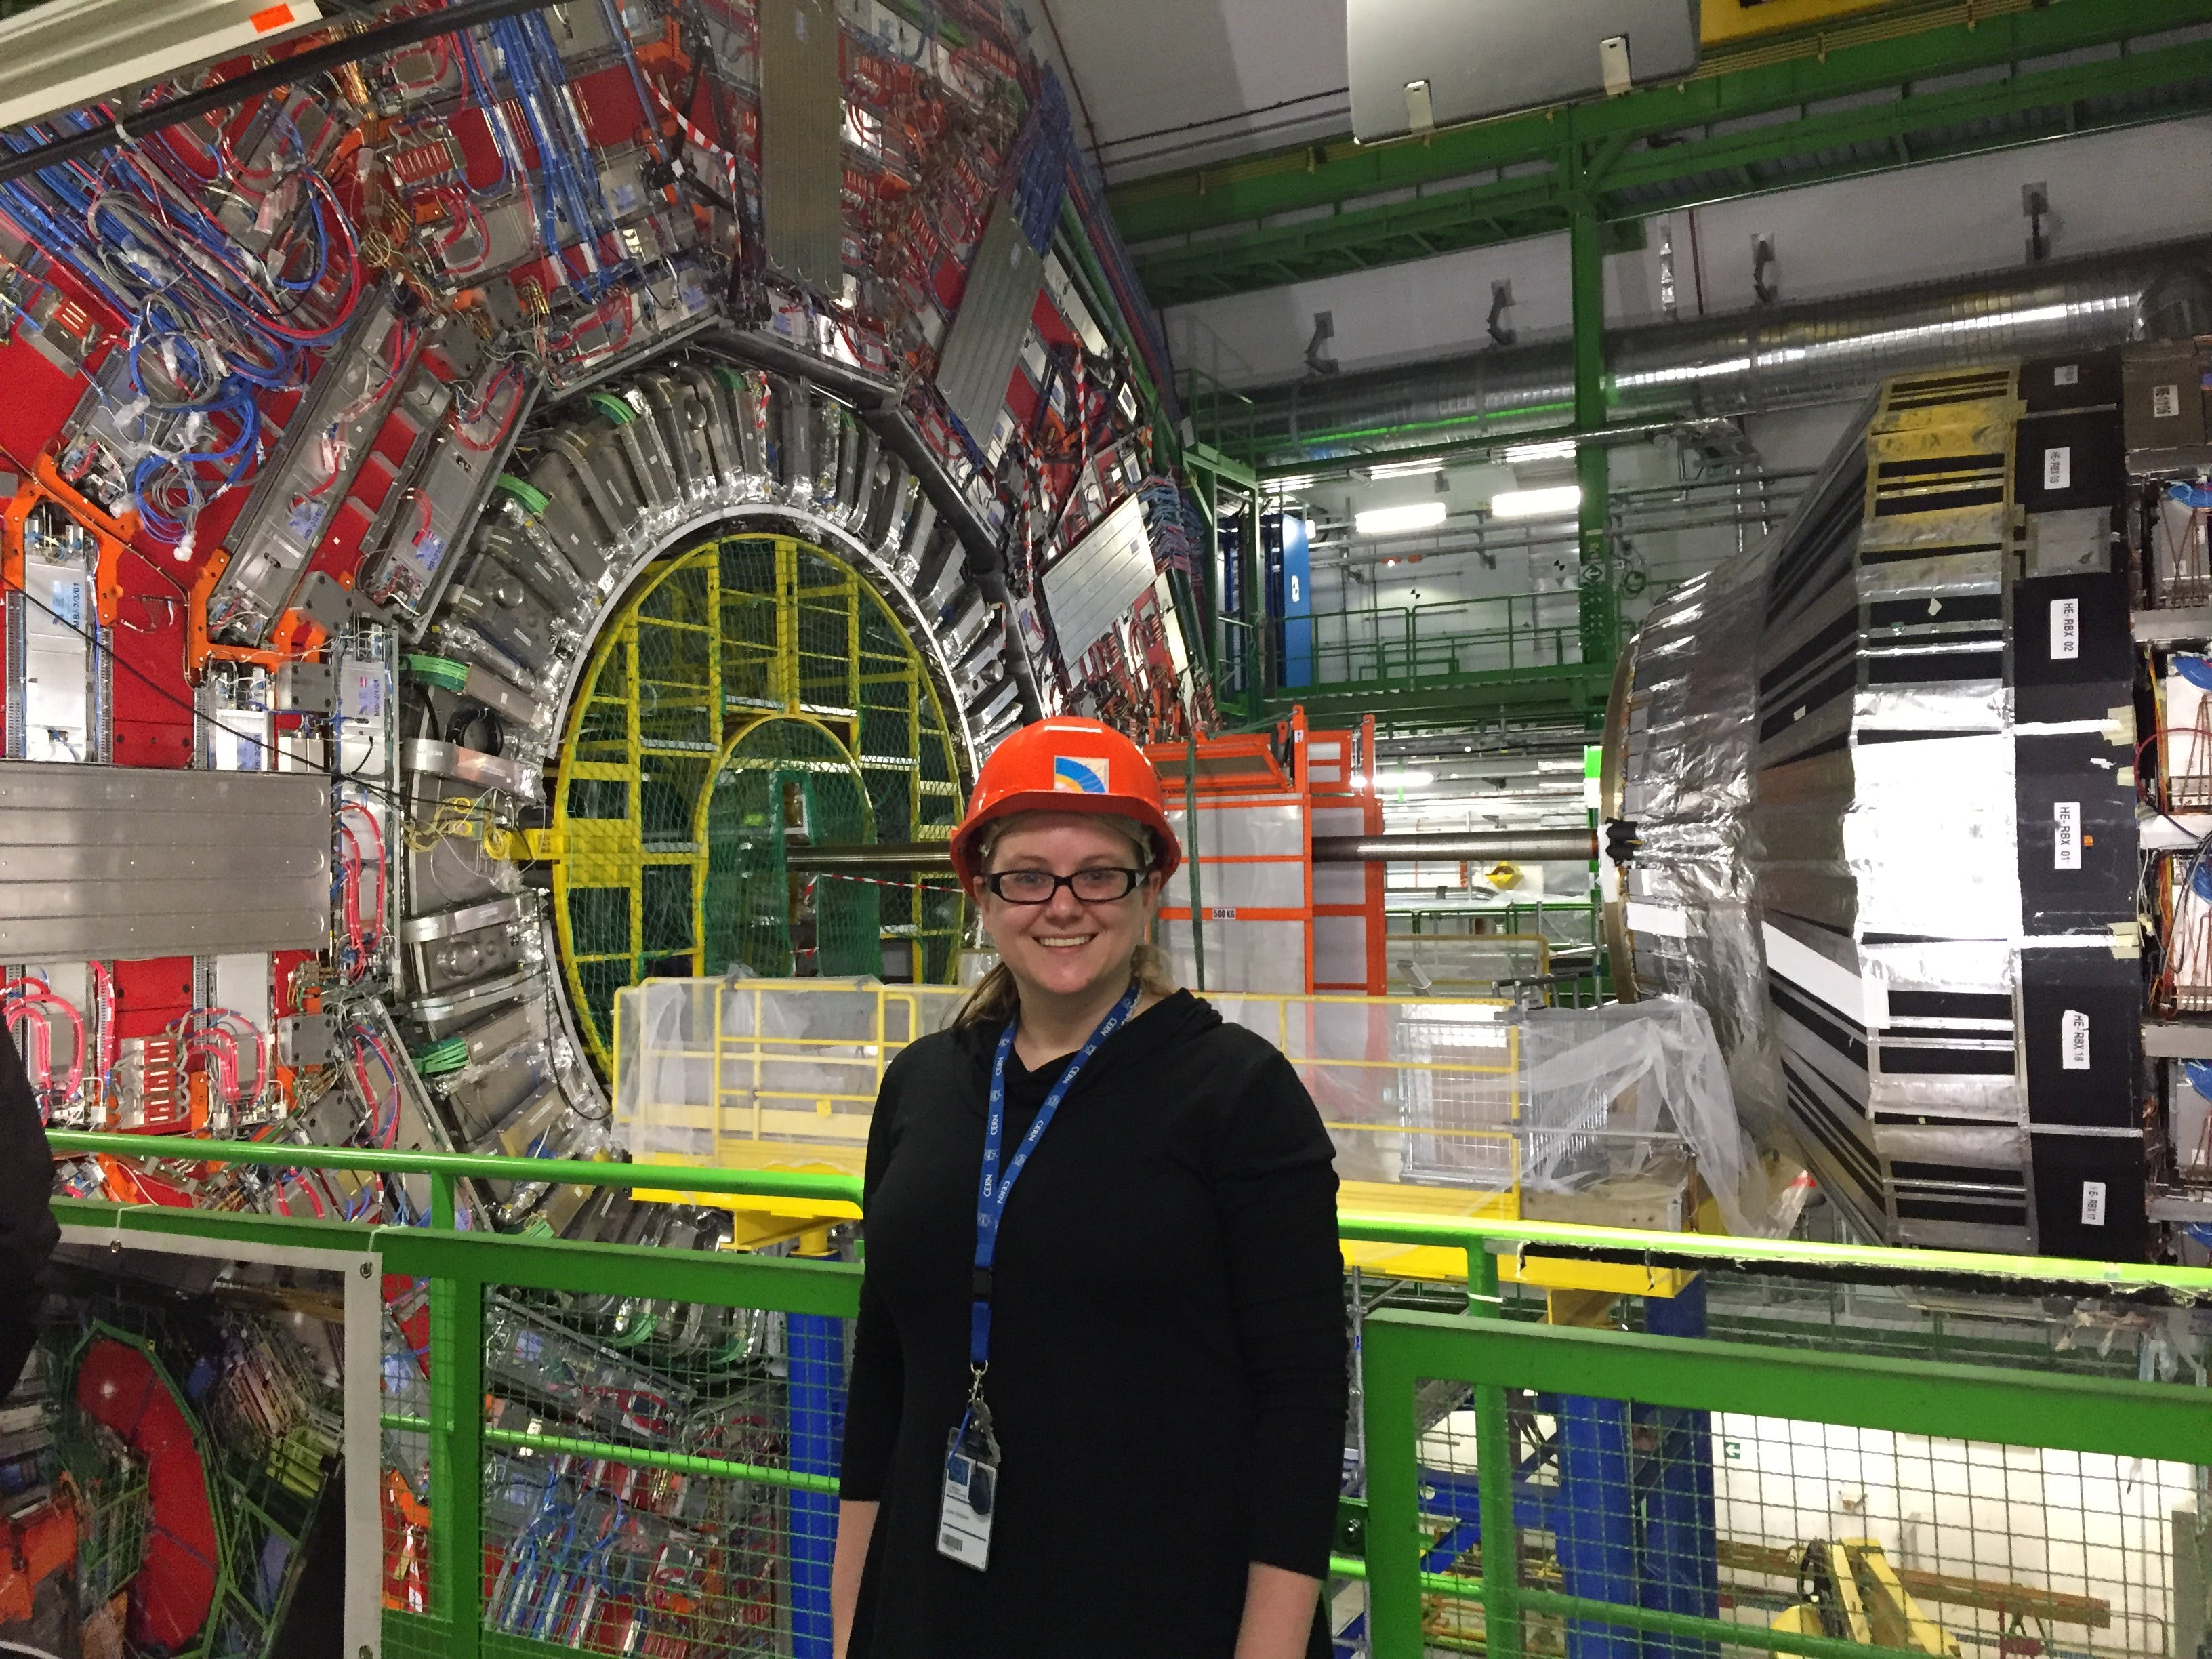 Assistant Professor of Physics Julie Hogan at the Large Hadron Collider (LHC) at CERN in Switzerland.